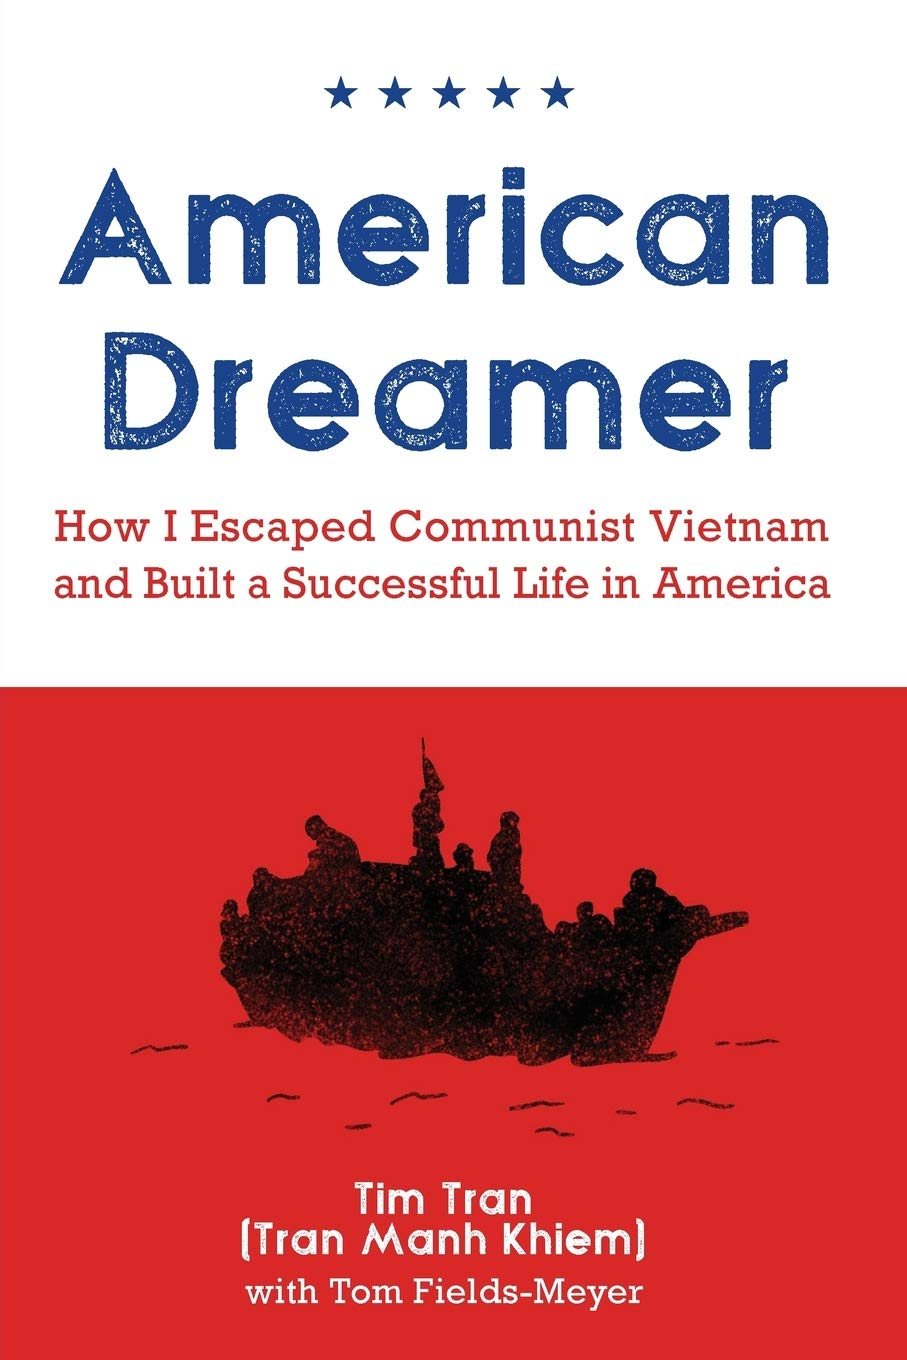 Amazon.com: American Dreamer: How I Escaped Communist Vietnam and Built a  Successful Life in America (9781945398025): Tran, Tim, Fields-Meyer, Tom:  Books